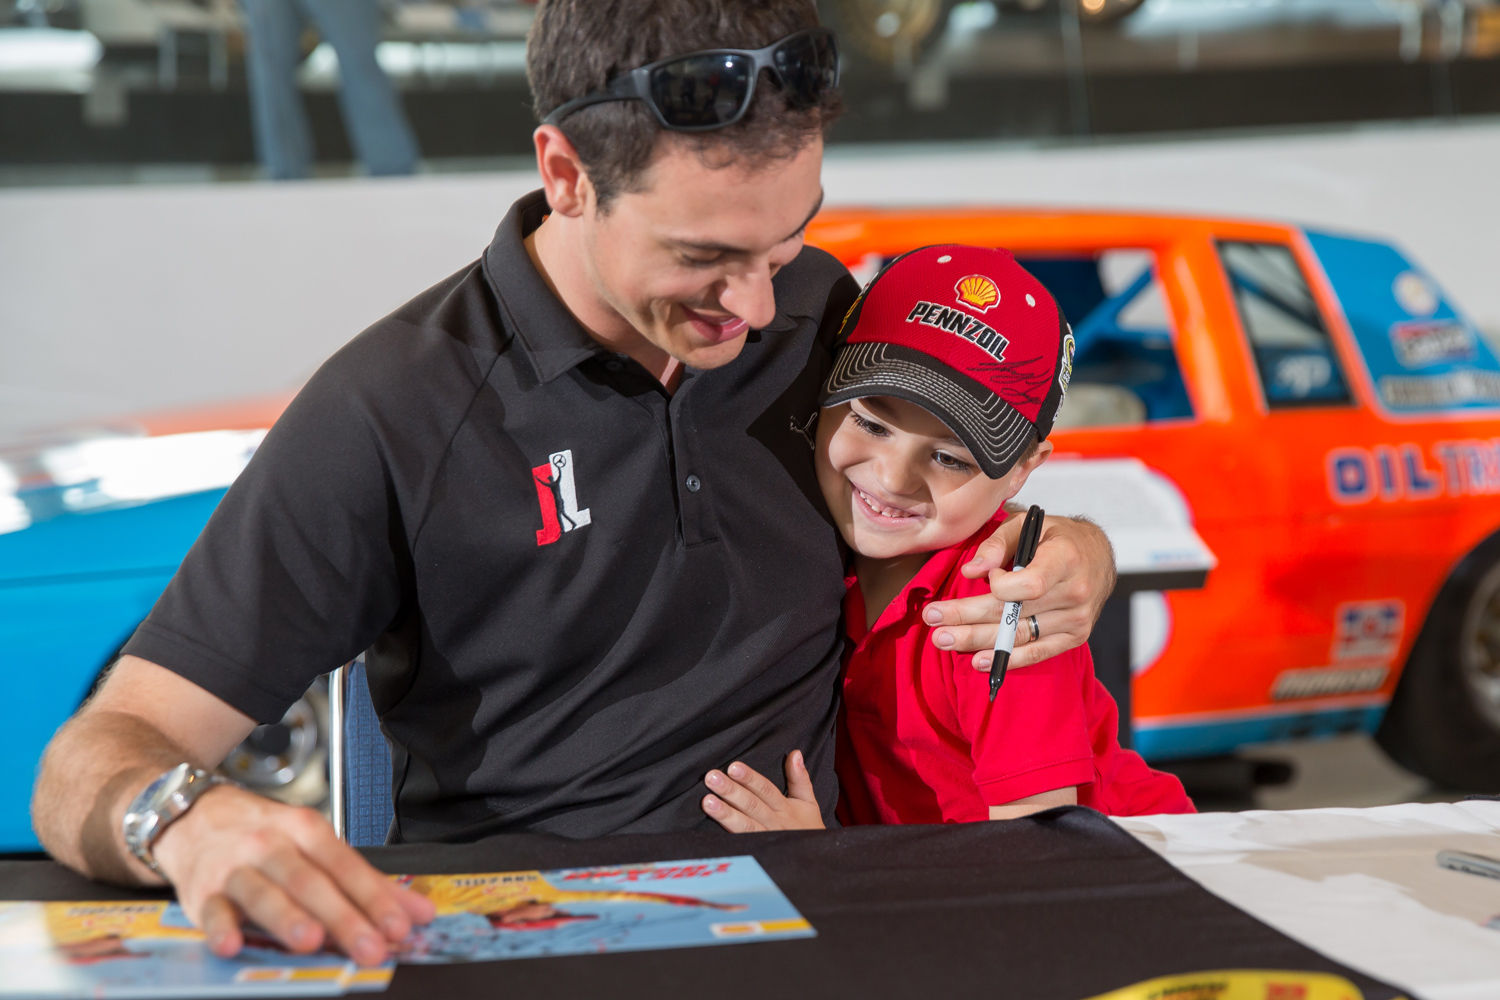 Logano-May-Meet-and-Greet-59